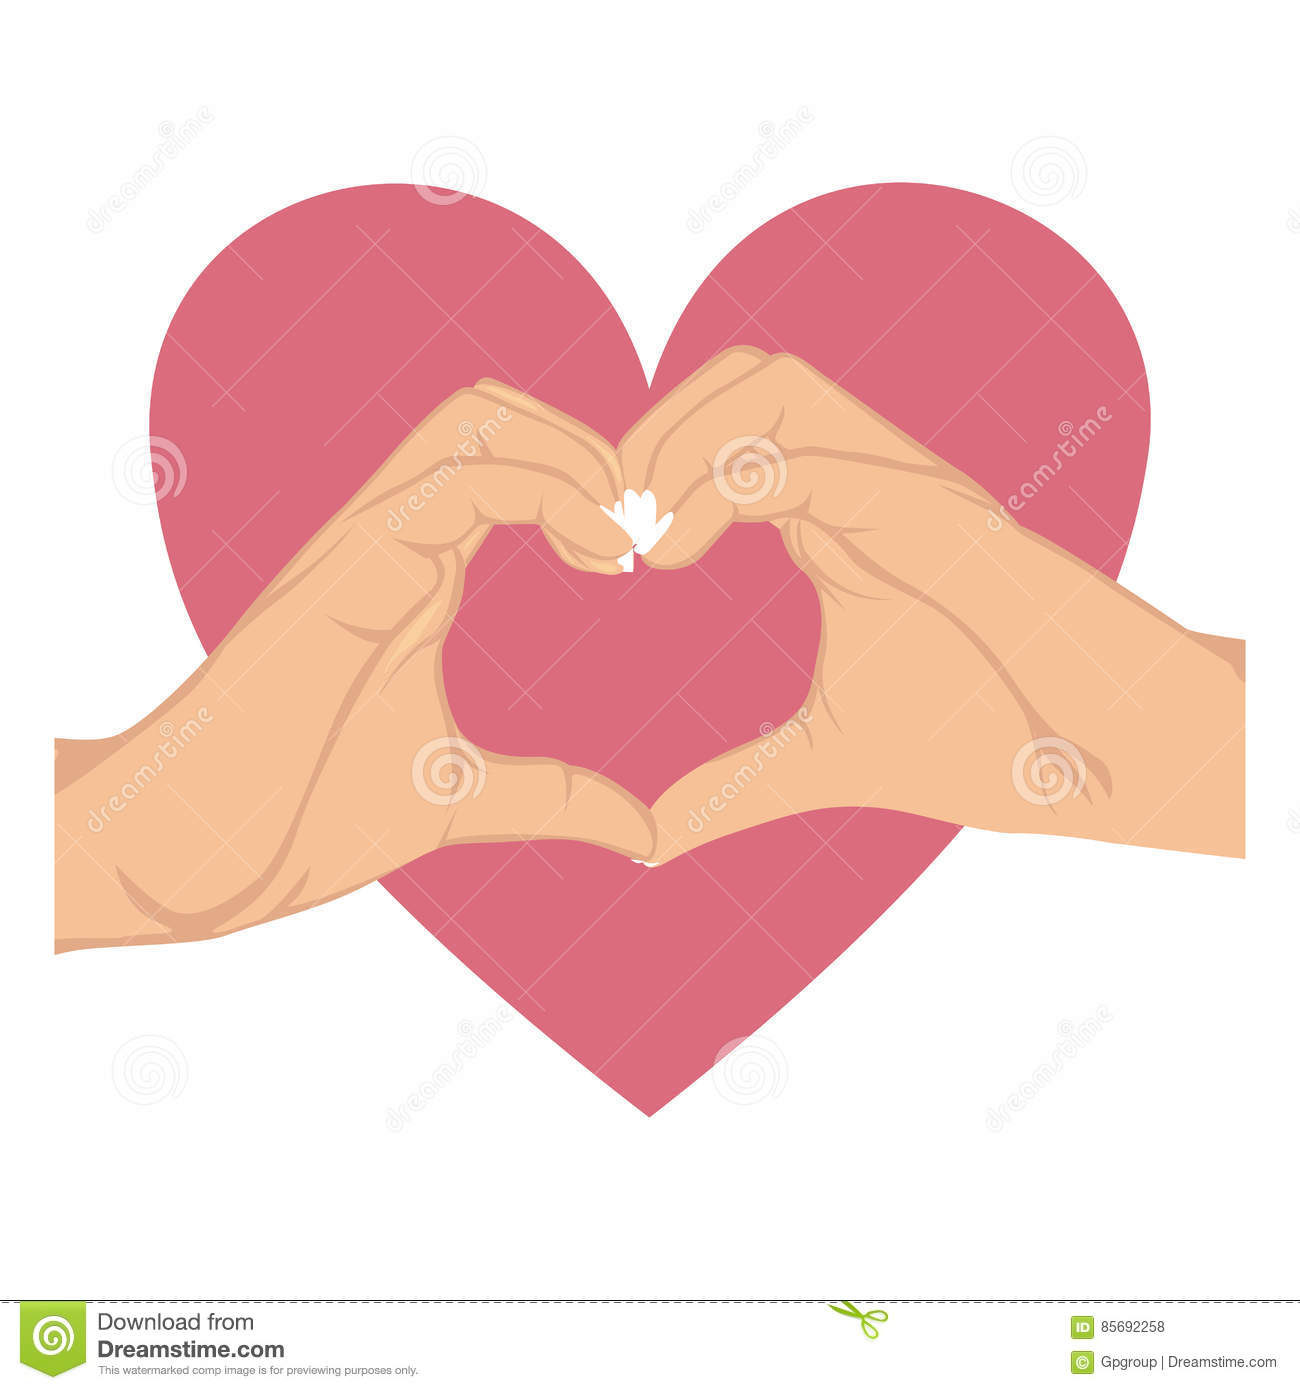 Hands in shape of heart in symbol support breast cancer and big hands in shape of heart in symbol support breast cancer and big heart buycottarizona Image collections